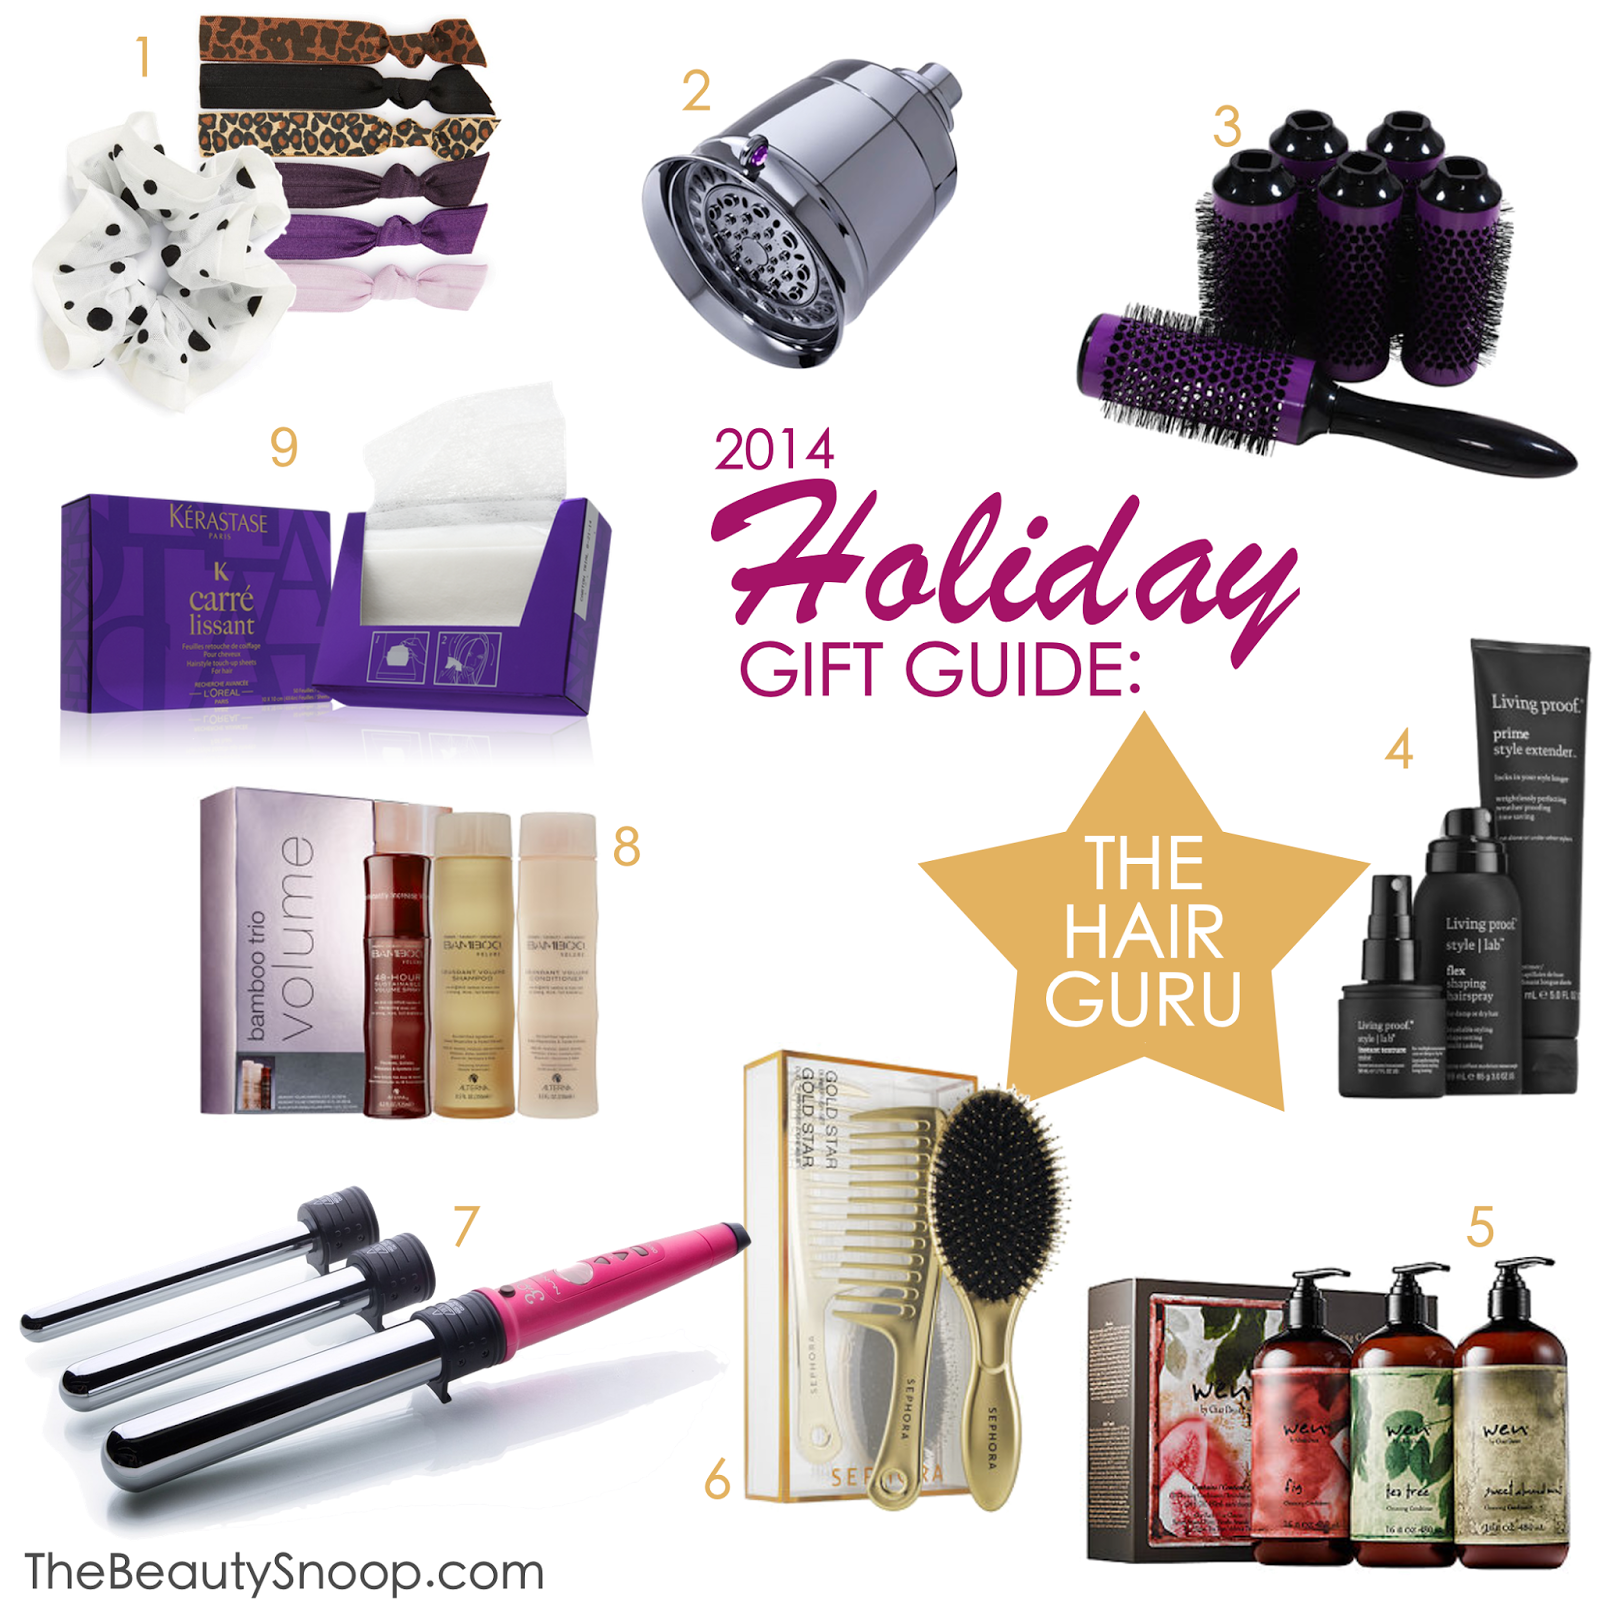 Christmas gift guide for her, hair and beauty gift giving guide, gift ideas for women and teens who love Sephora, gift ideas for women, hair stylist picks for best gifts this season: T3 Showerhead; Click n Curl Brushes; Living Proof Prime & Prep; Wen Cleansing Conditioner Trio; Sephora Gold Star Brush Duo; Nume Titan 3; Alterna Bamboo Volume Trio; Kerastase Carre Lissant; Emi Jay Ties; Top Shop Scrunchie